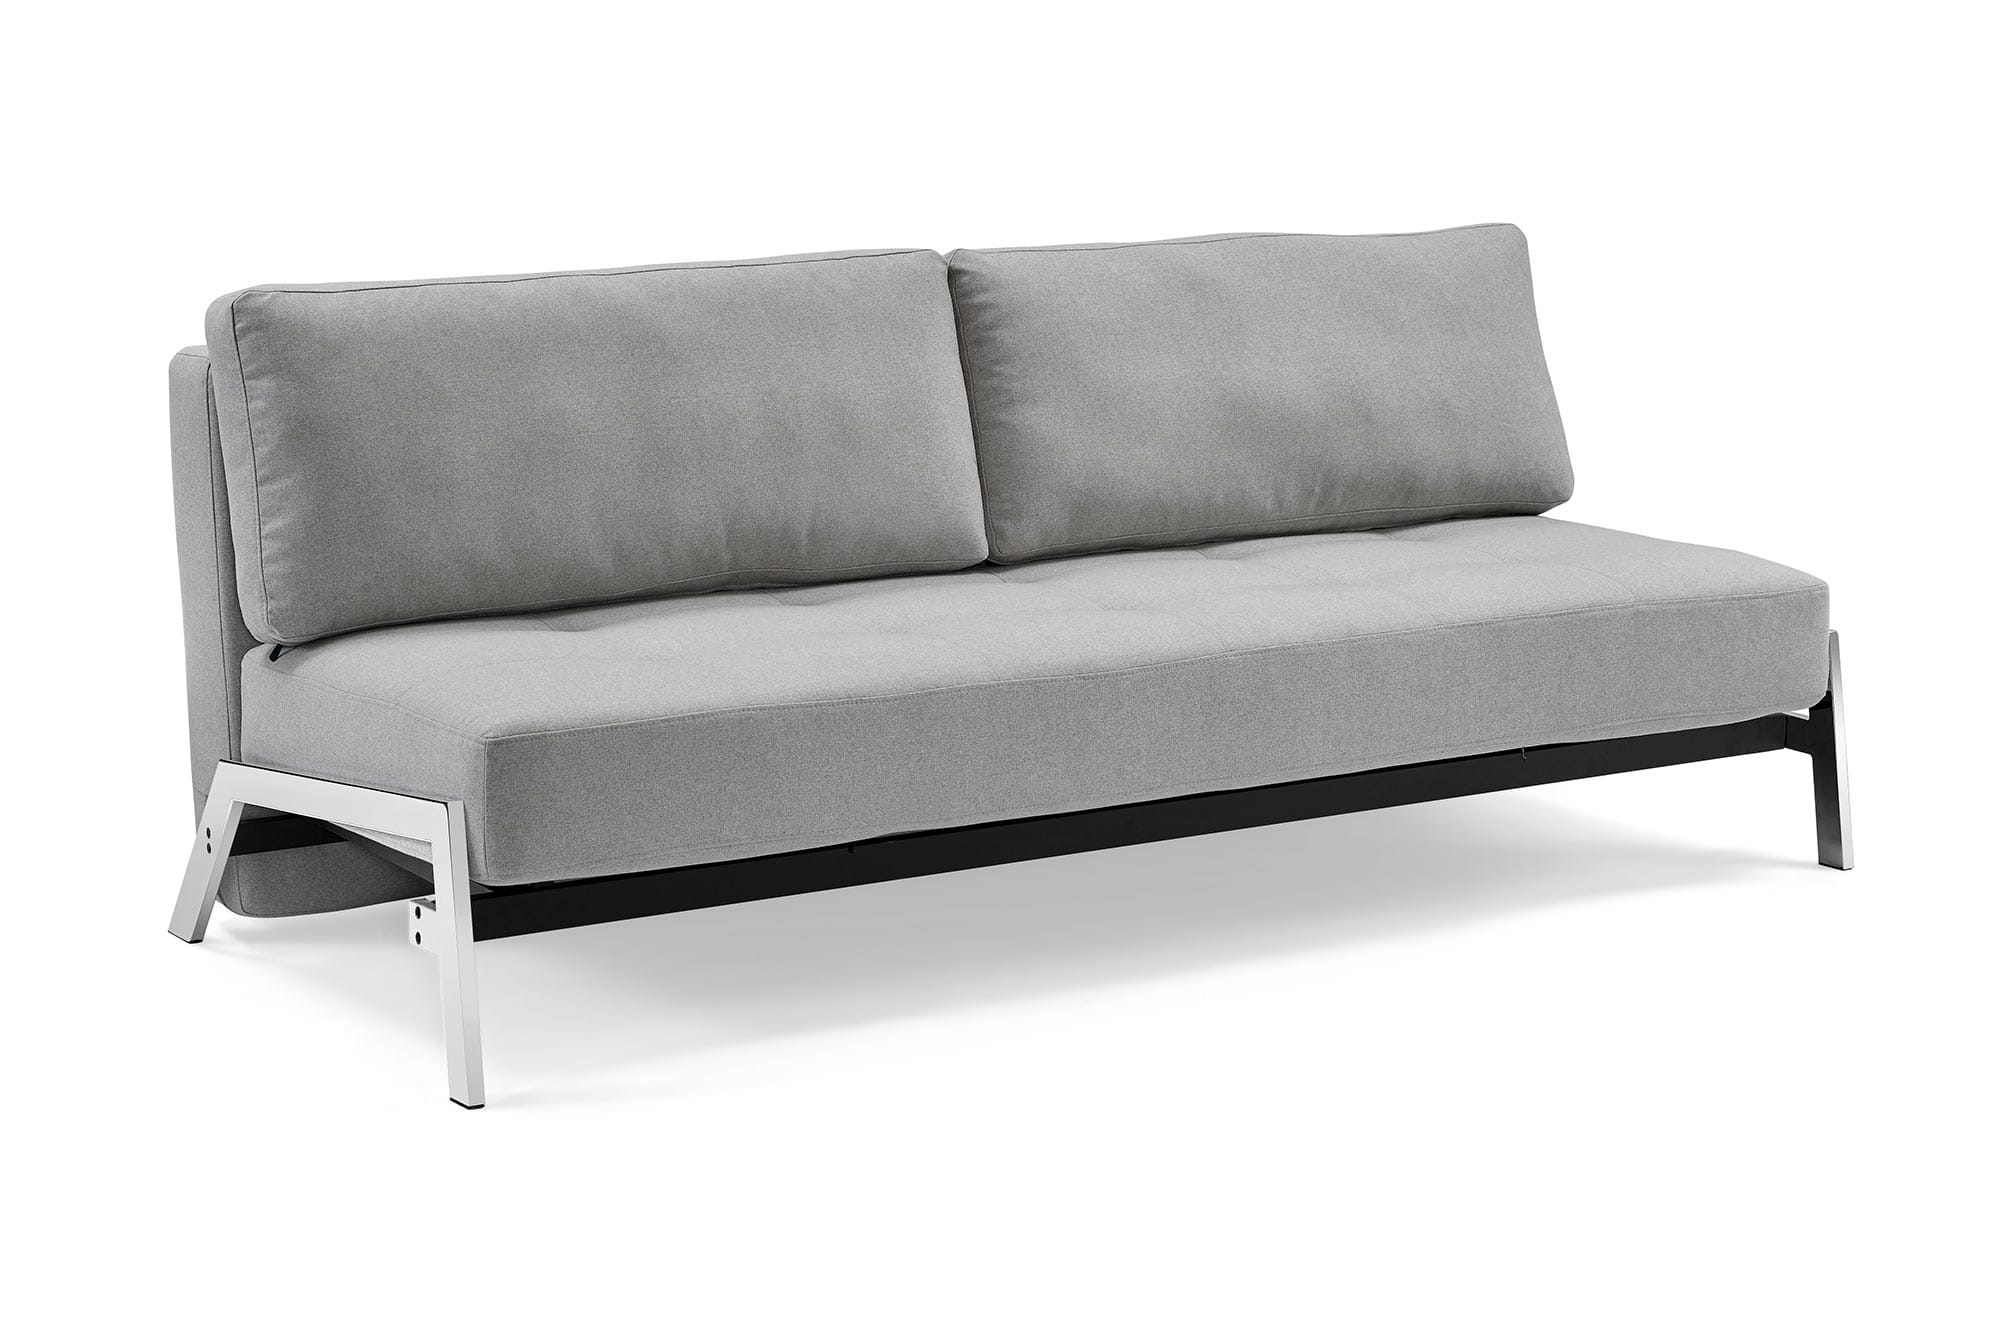 daria serta gray convertible sofa sofas and lounges melbourne sealy taraba home review